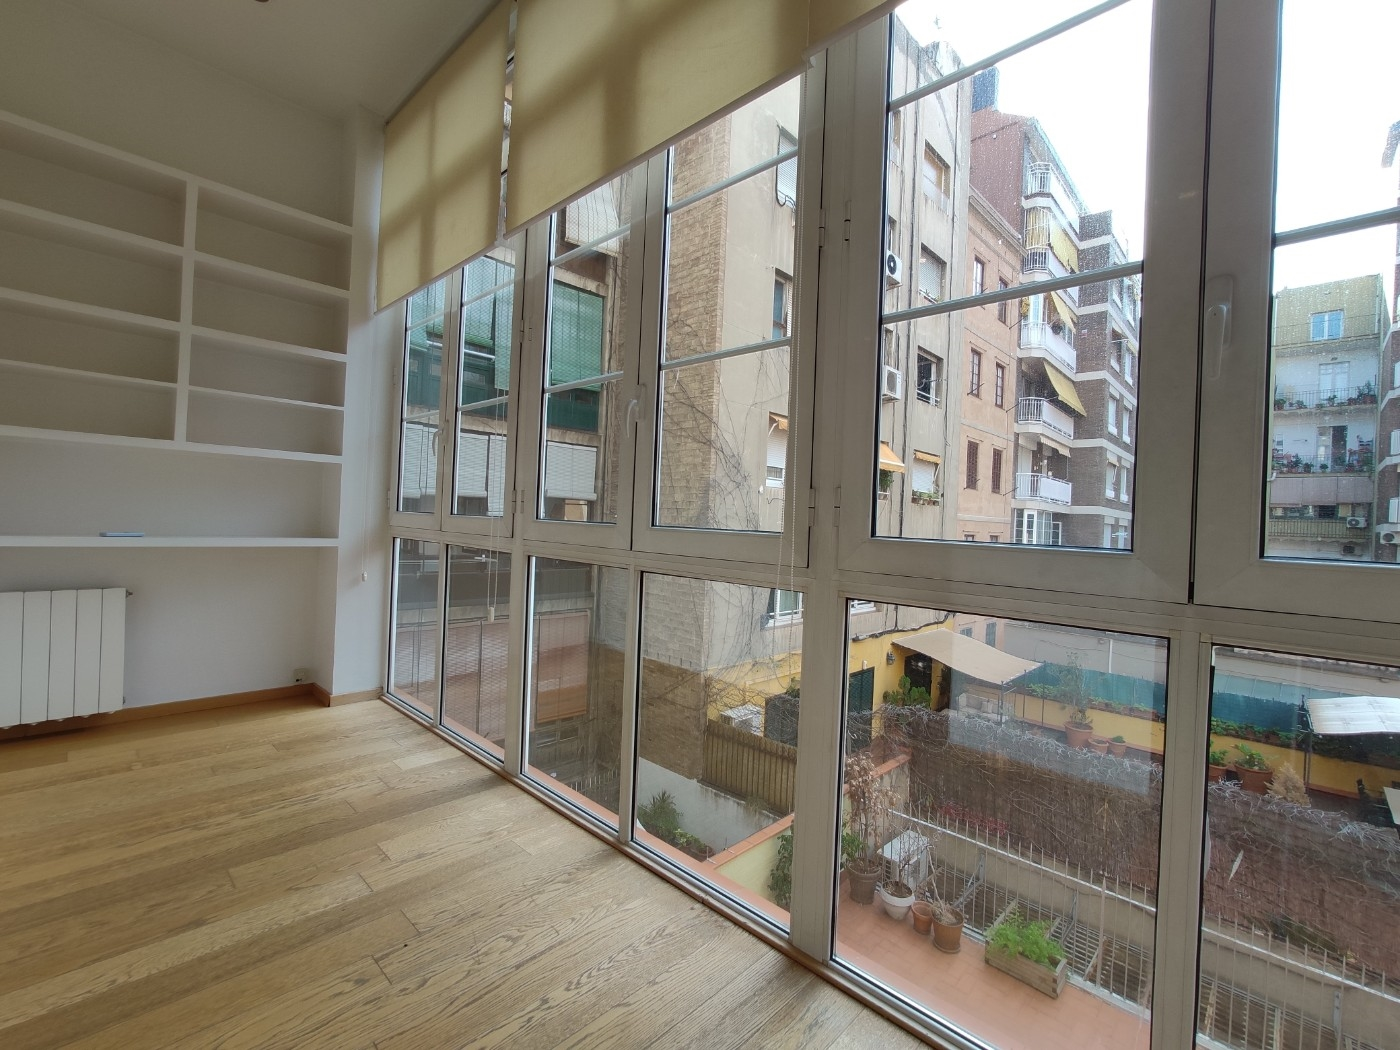 Apartment in Barcelona - eixample. 1 bedrooms. For sale: 345.000 €.